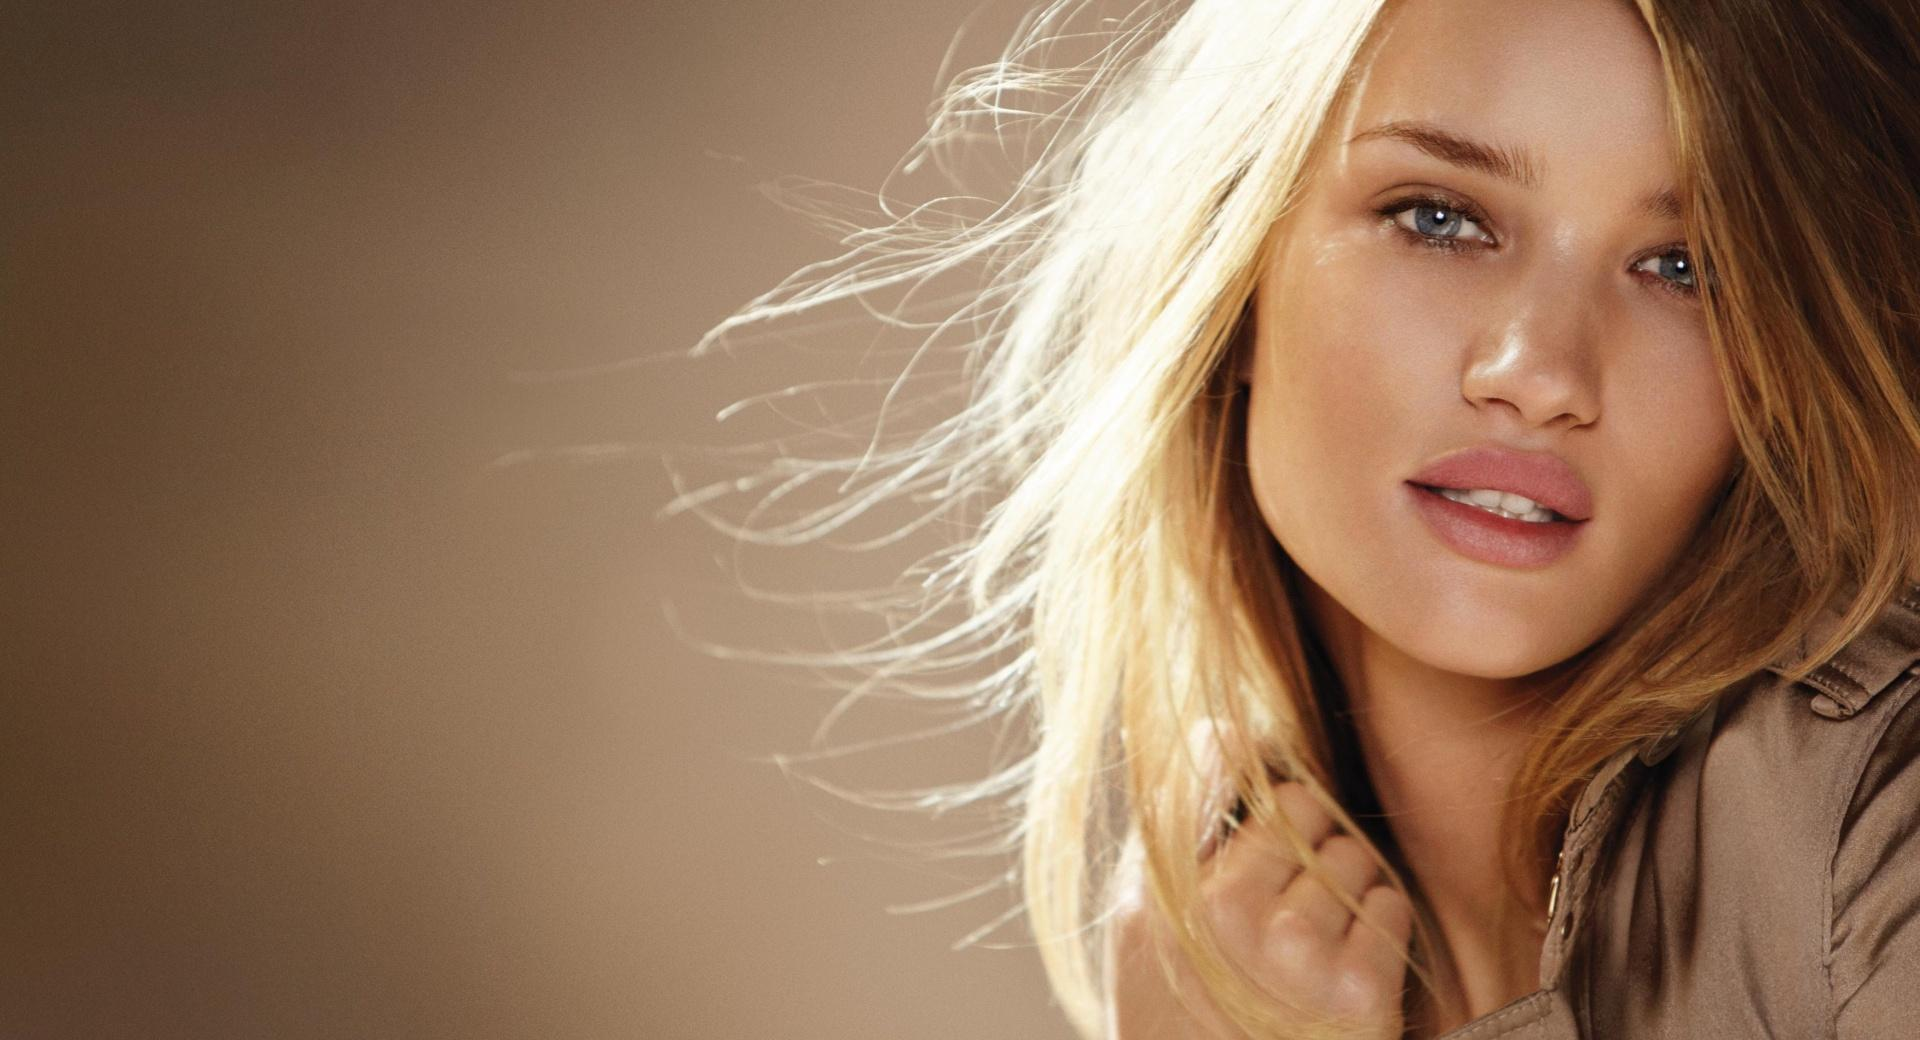 Rosie Huntington For Burberry wallpapers HD quality